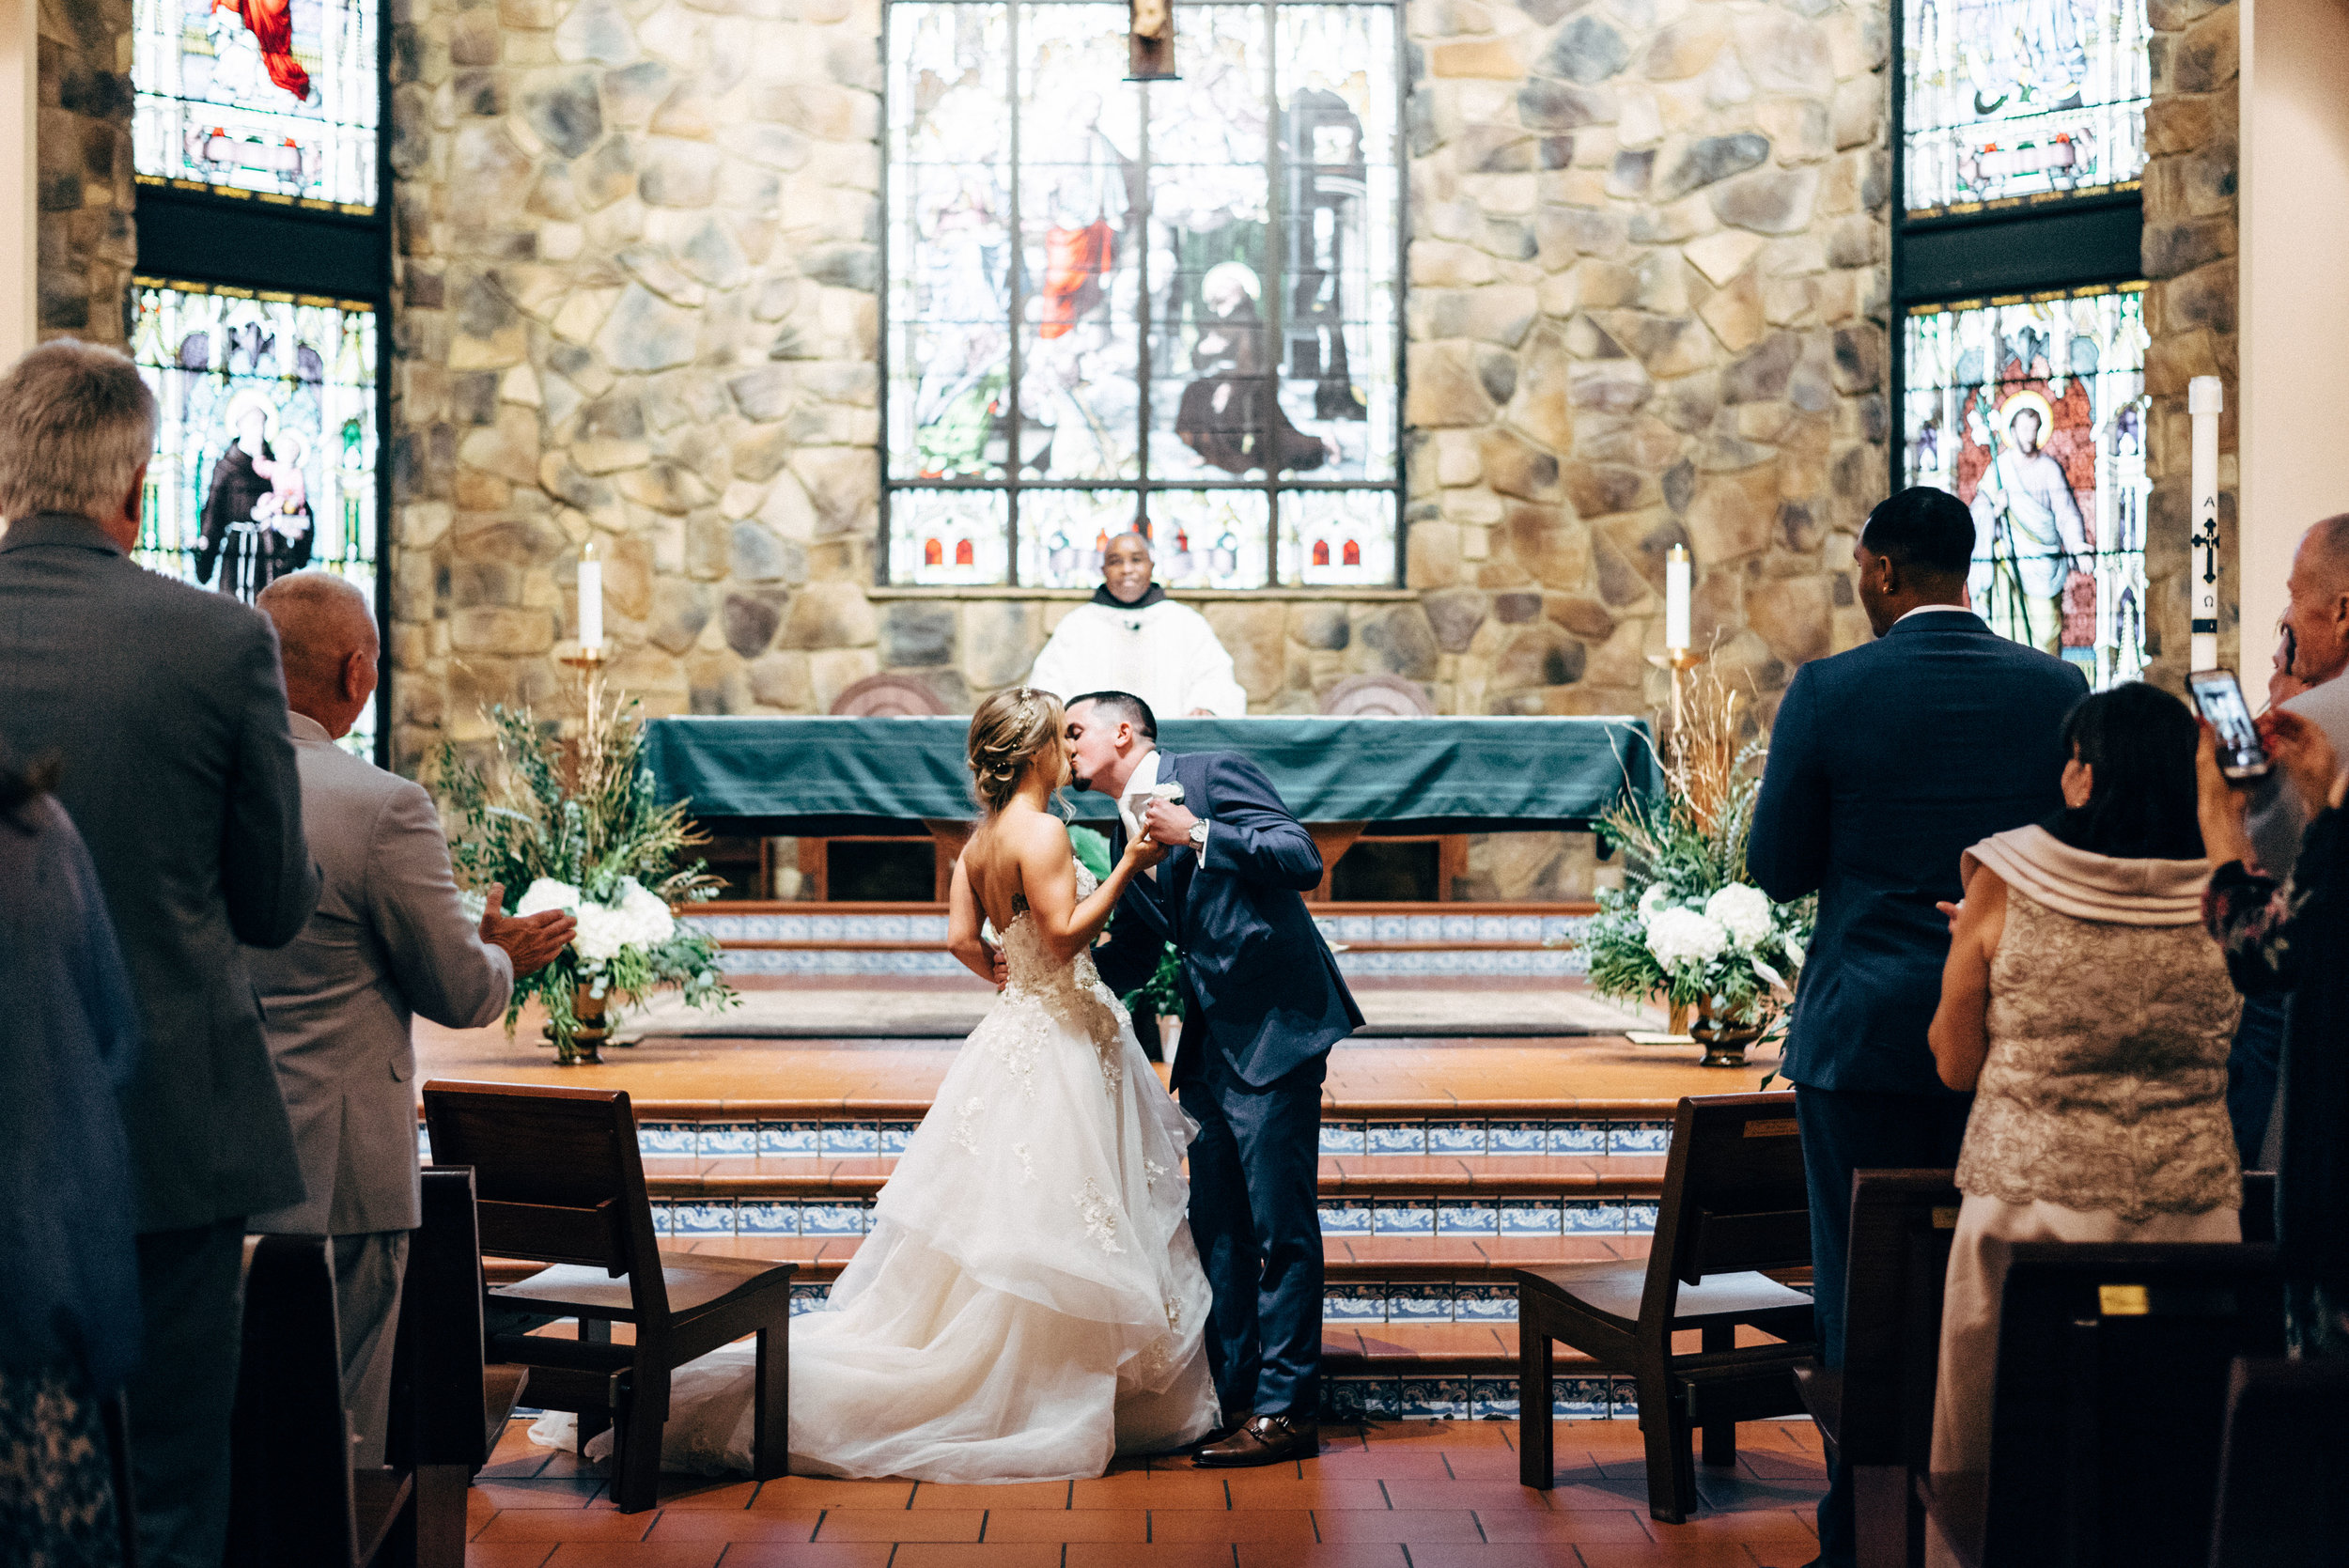 groom kissing his bride during wedding ceremony at St. Francis of Assisi Catholic Church